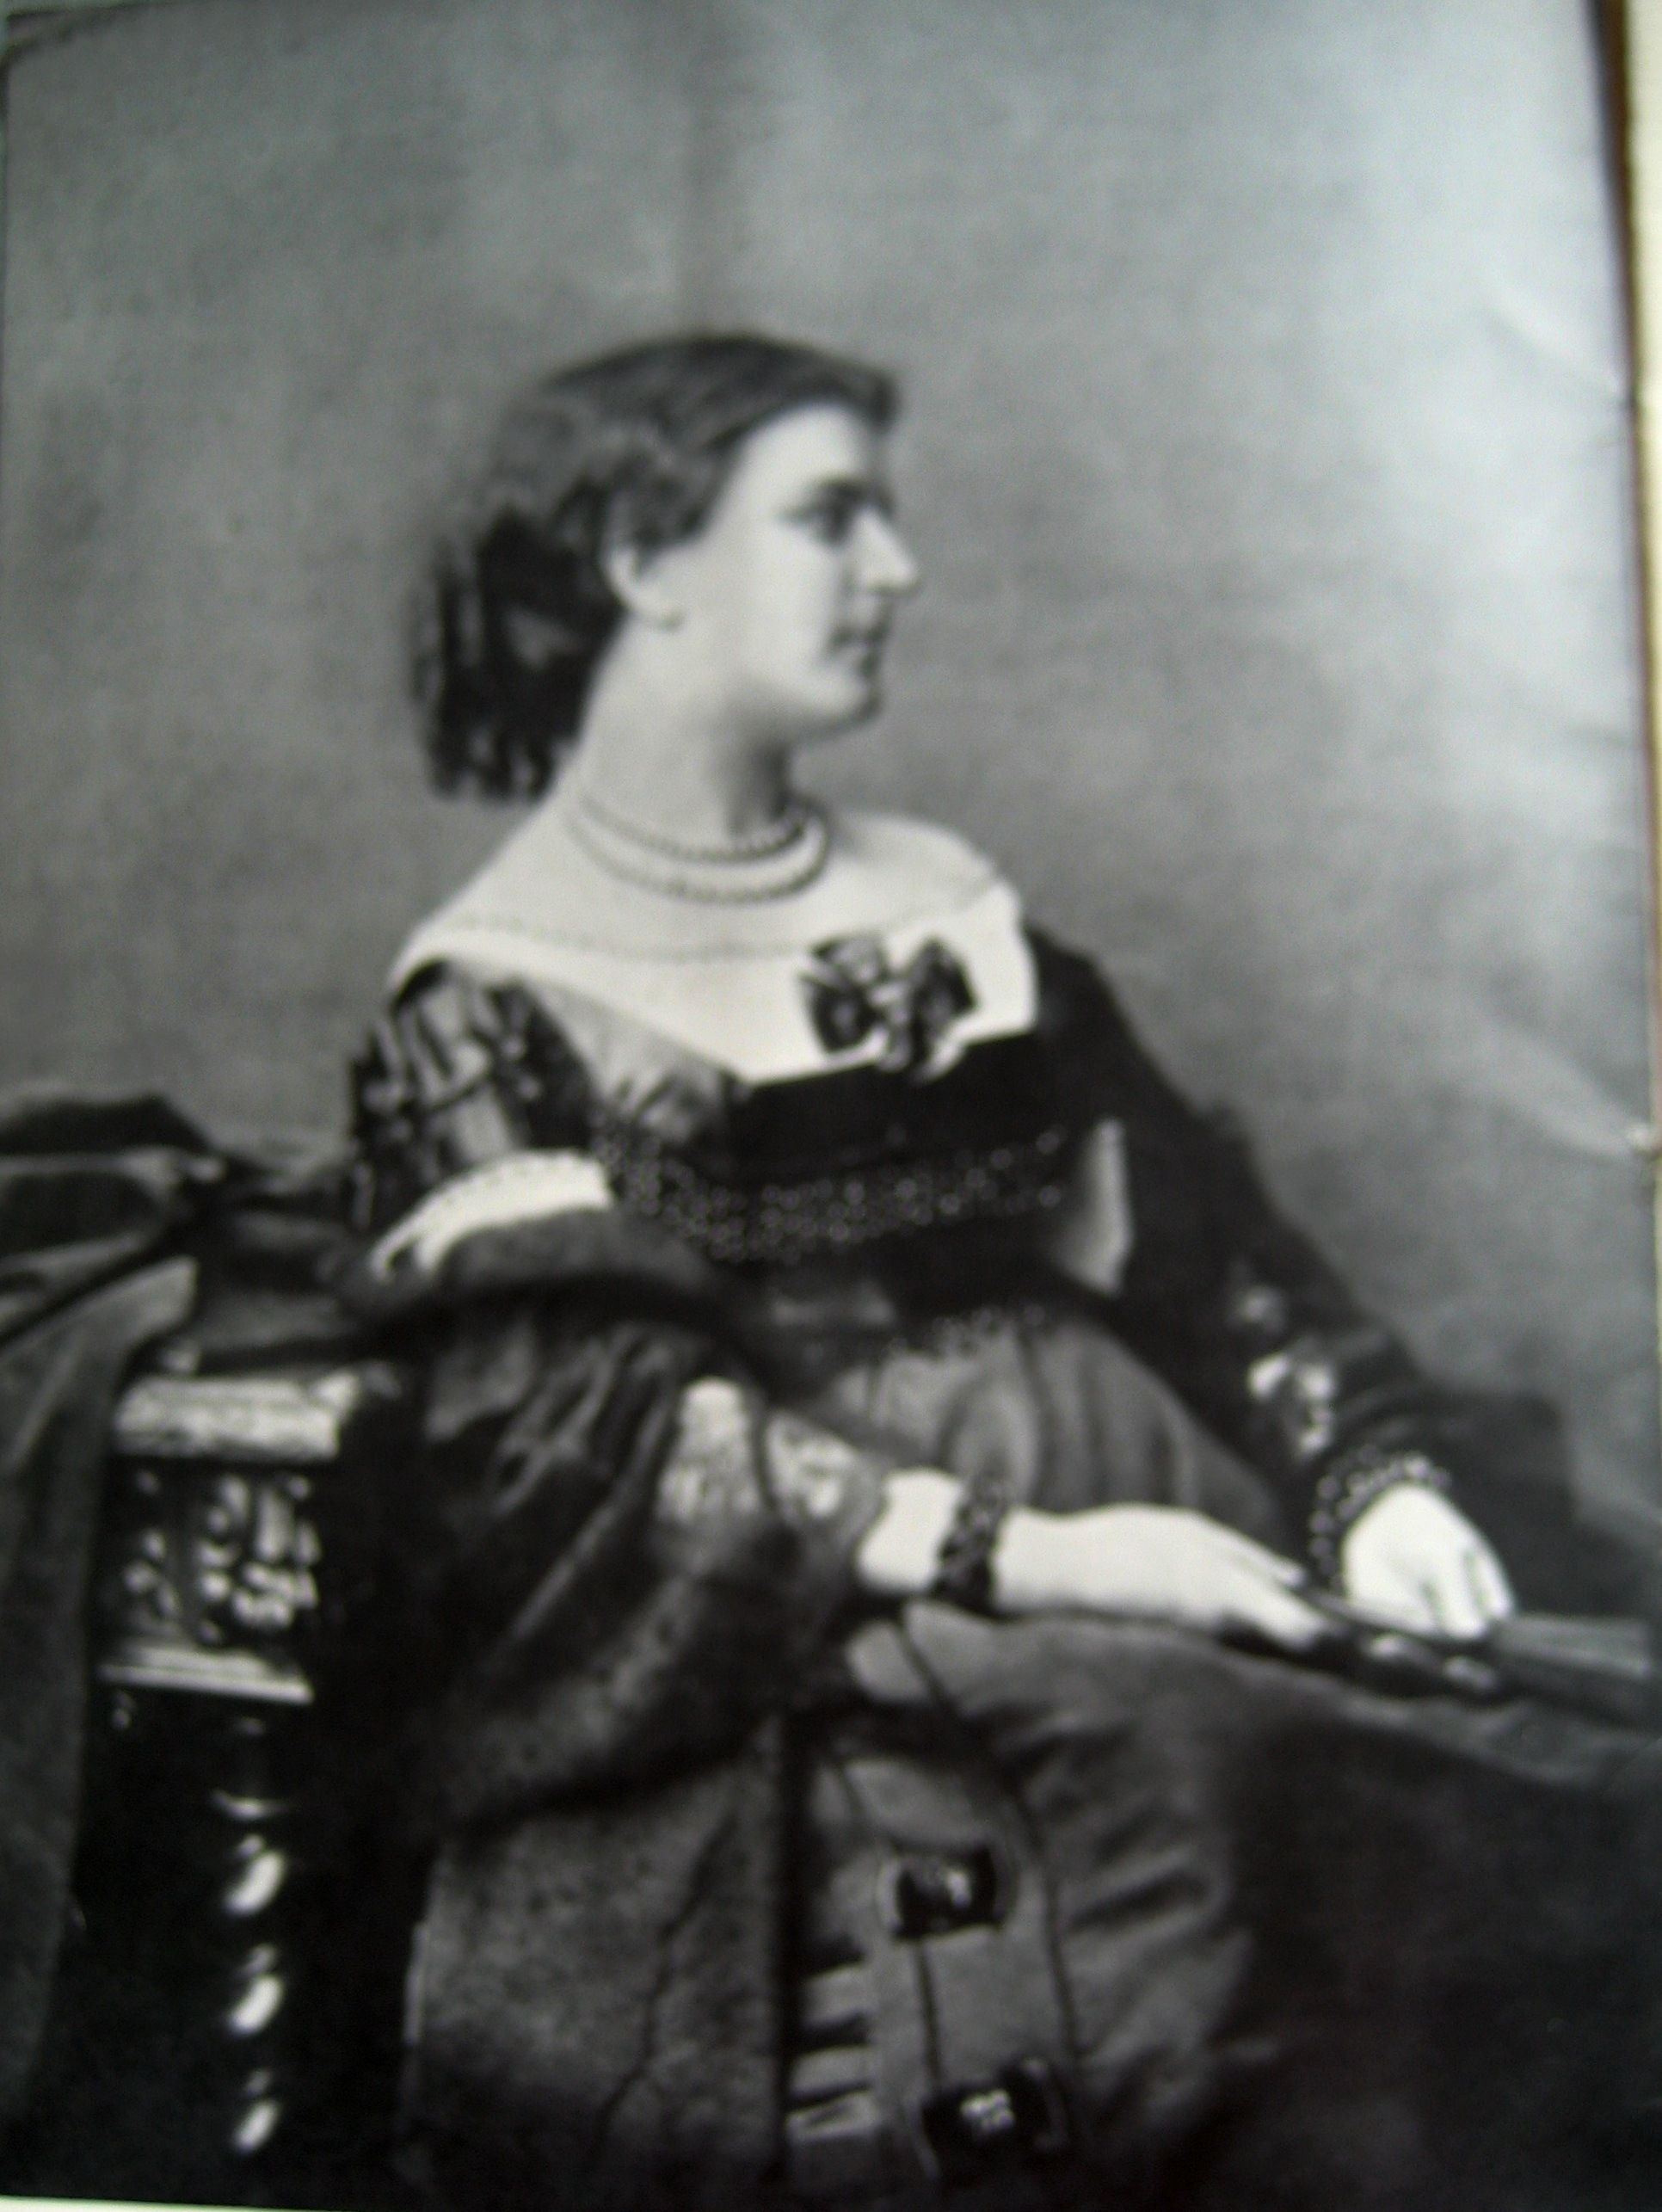 Marie Souvestre Eleanor Roosevelts Oct Nov Teacher And Allenswood Headmistress At About 35 Years Old